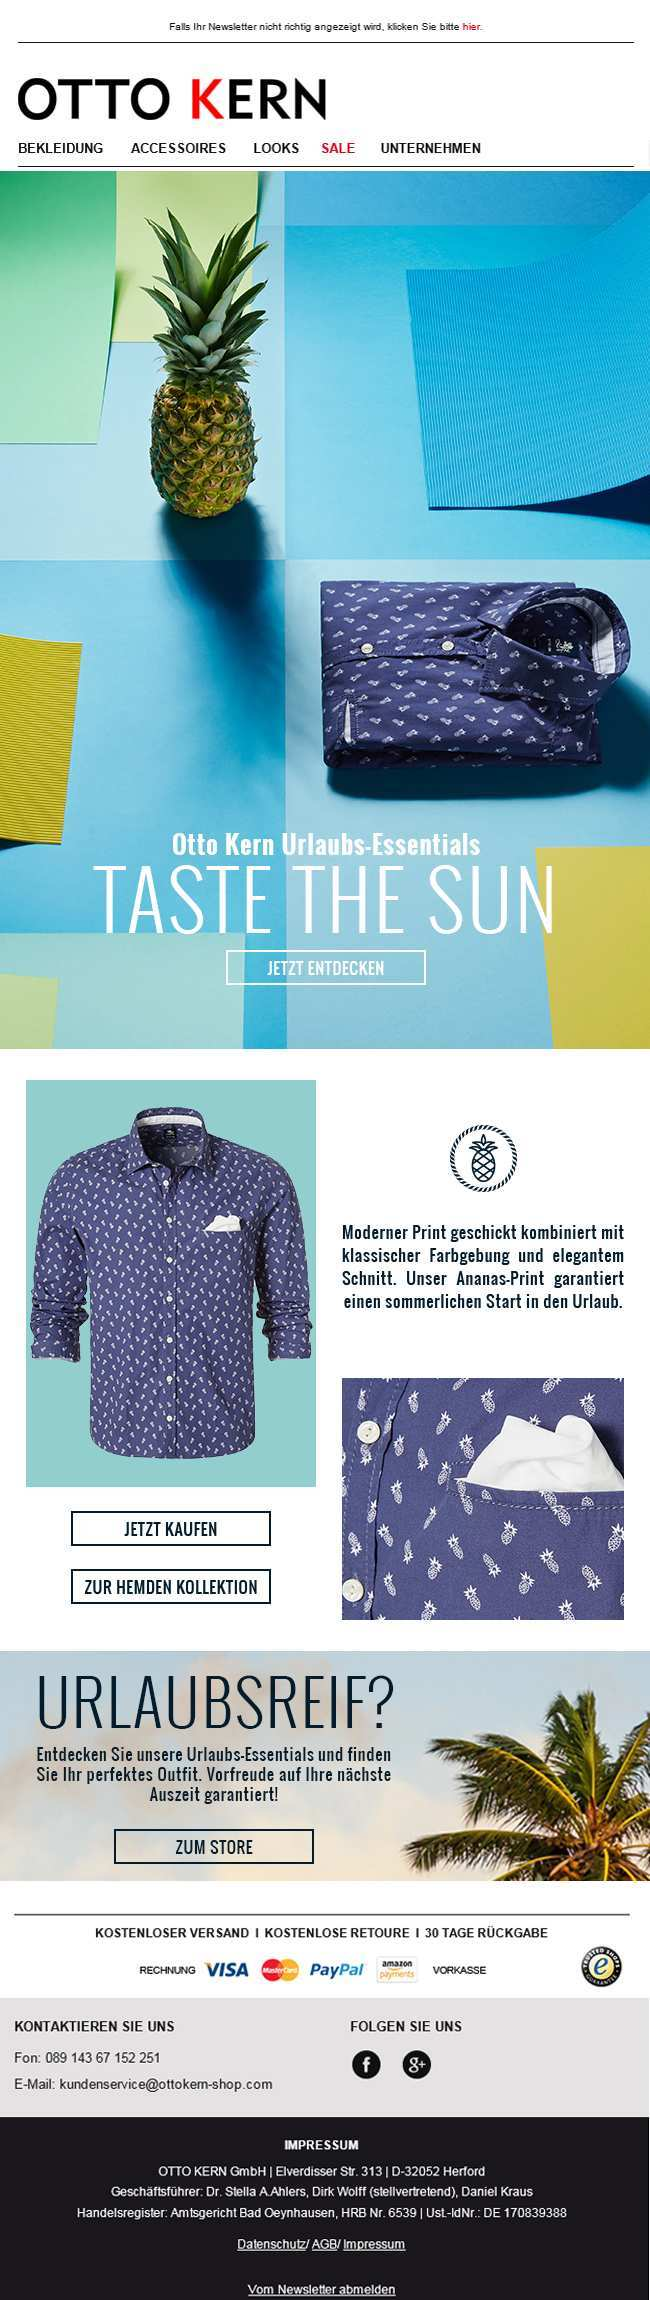 Taste The Sun Fashion For Men Otto Kern Presents The New Casual Shirts Collection For Spring Summer 2016 Newsl Email Design Newsletter Design Website Design